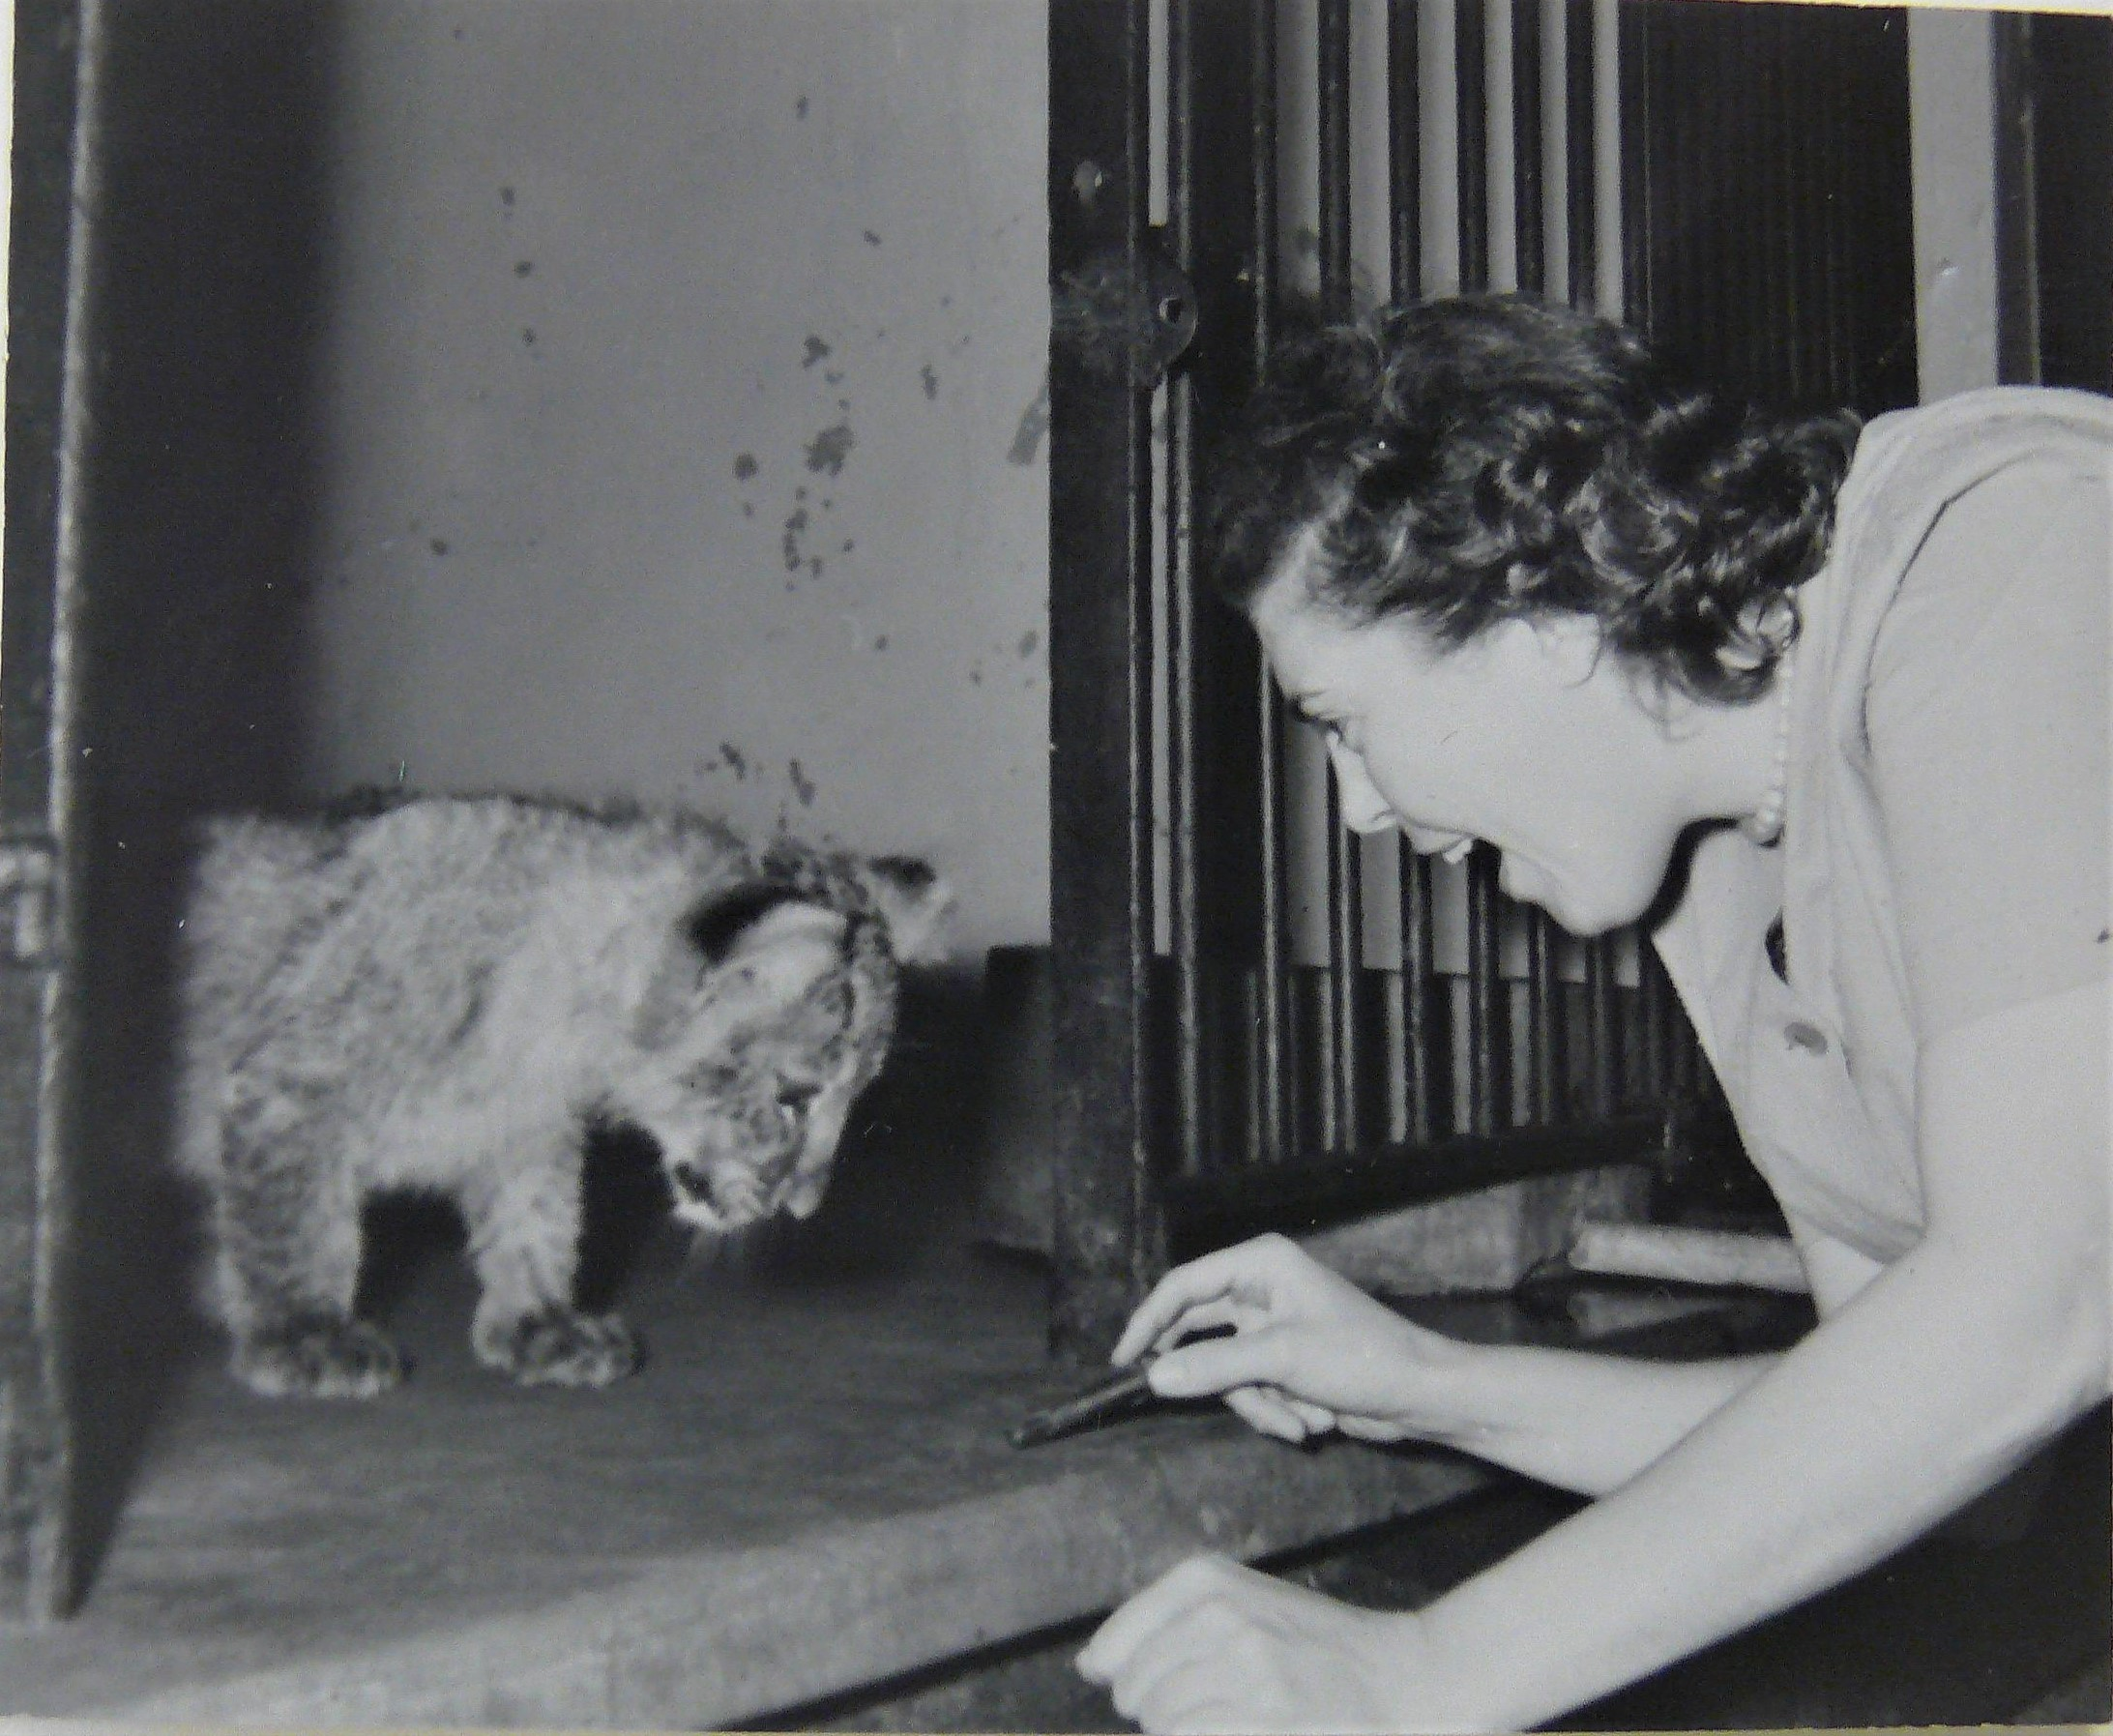 Crimilda is leaning forward, clasping a small object in her hand in front of a small lion cub in an